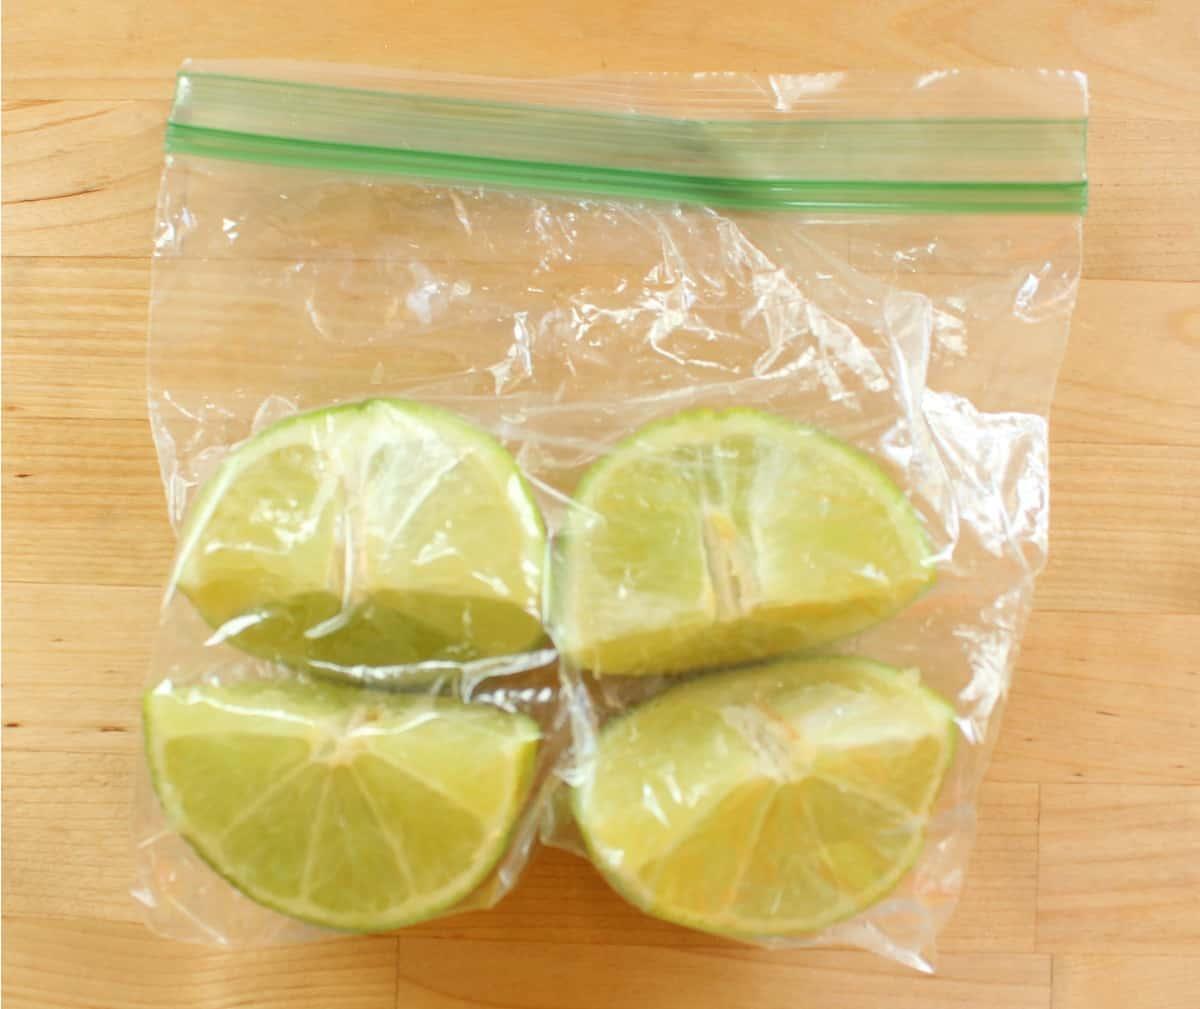 Lime wedges in a plastic bag with the air removed.